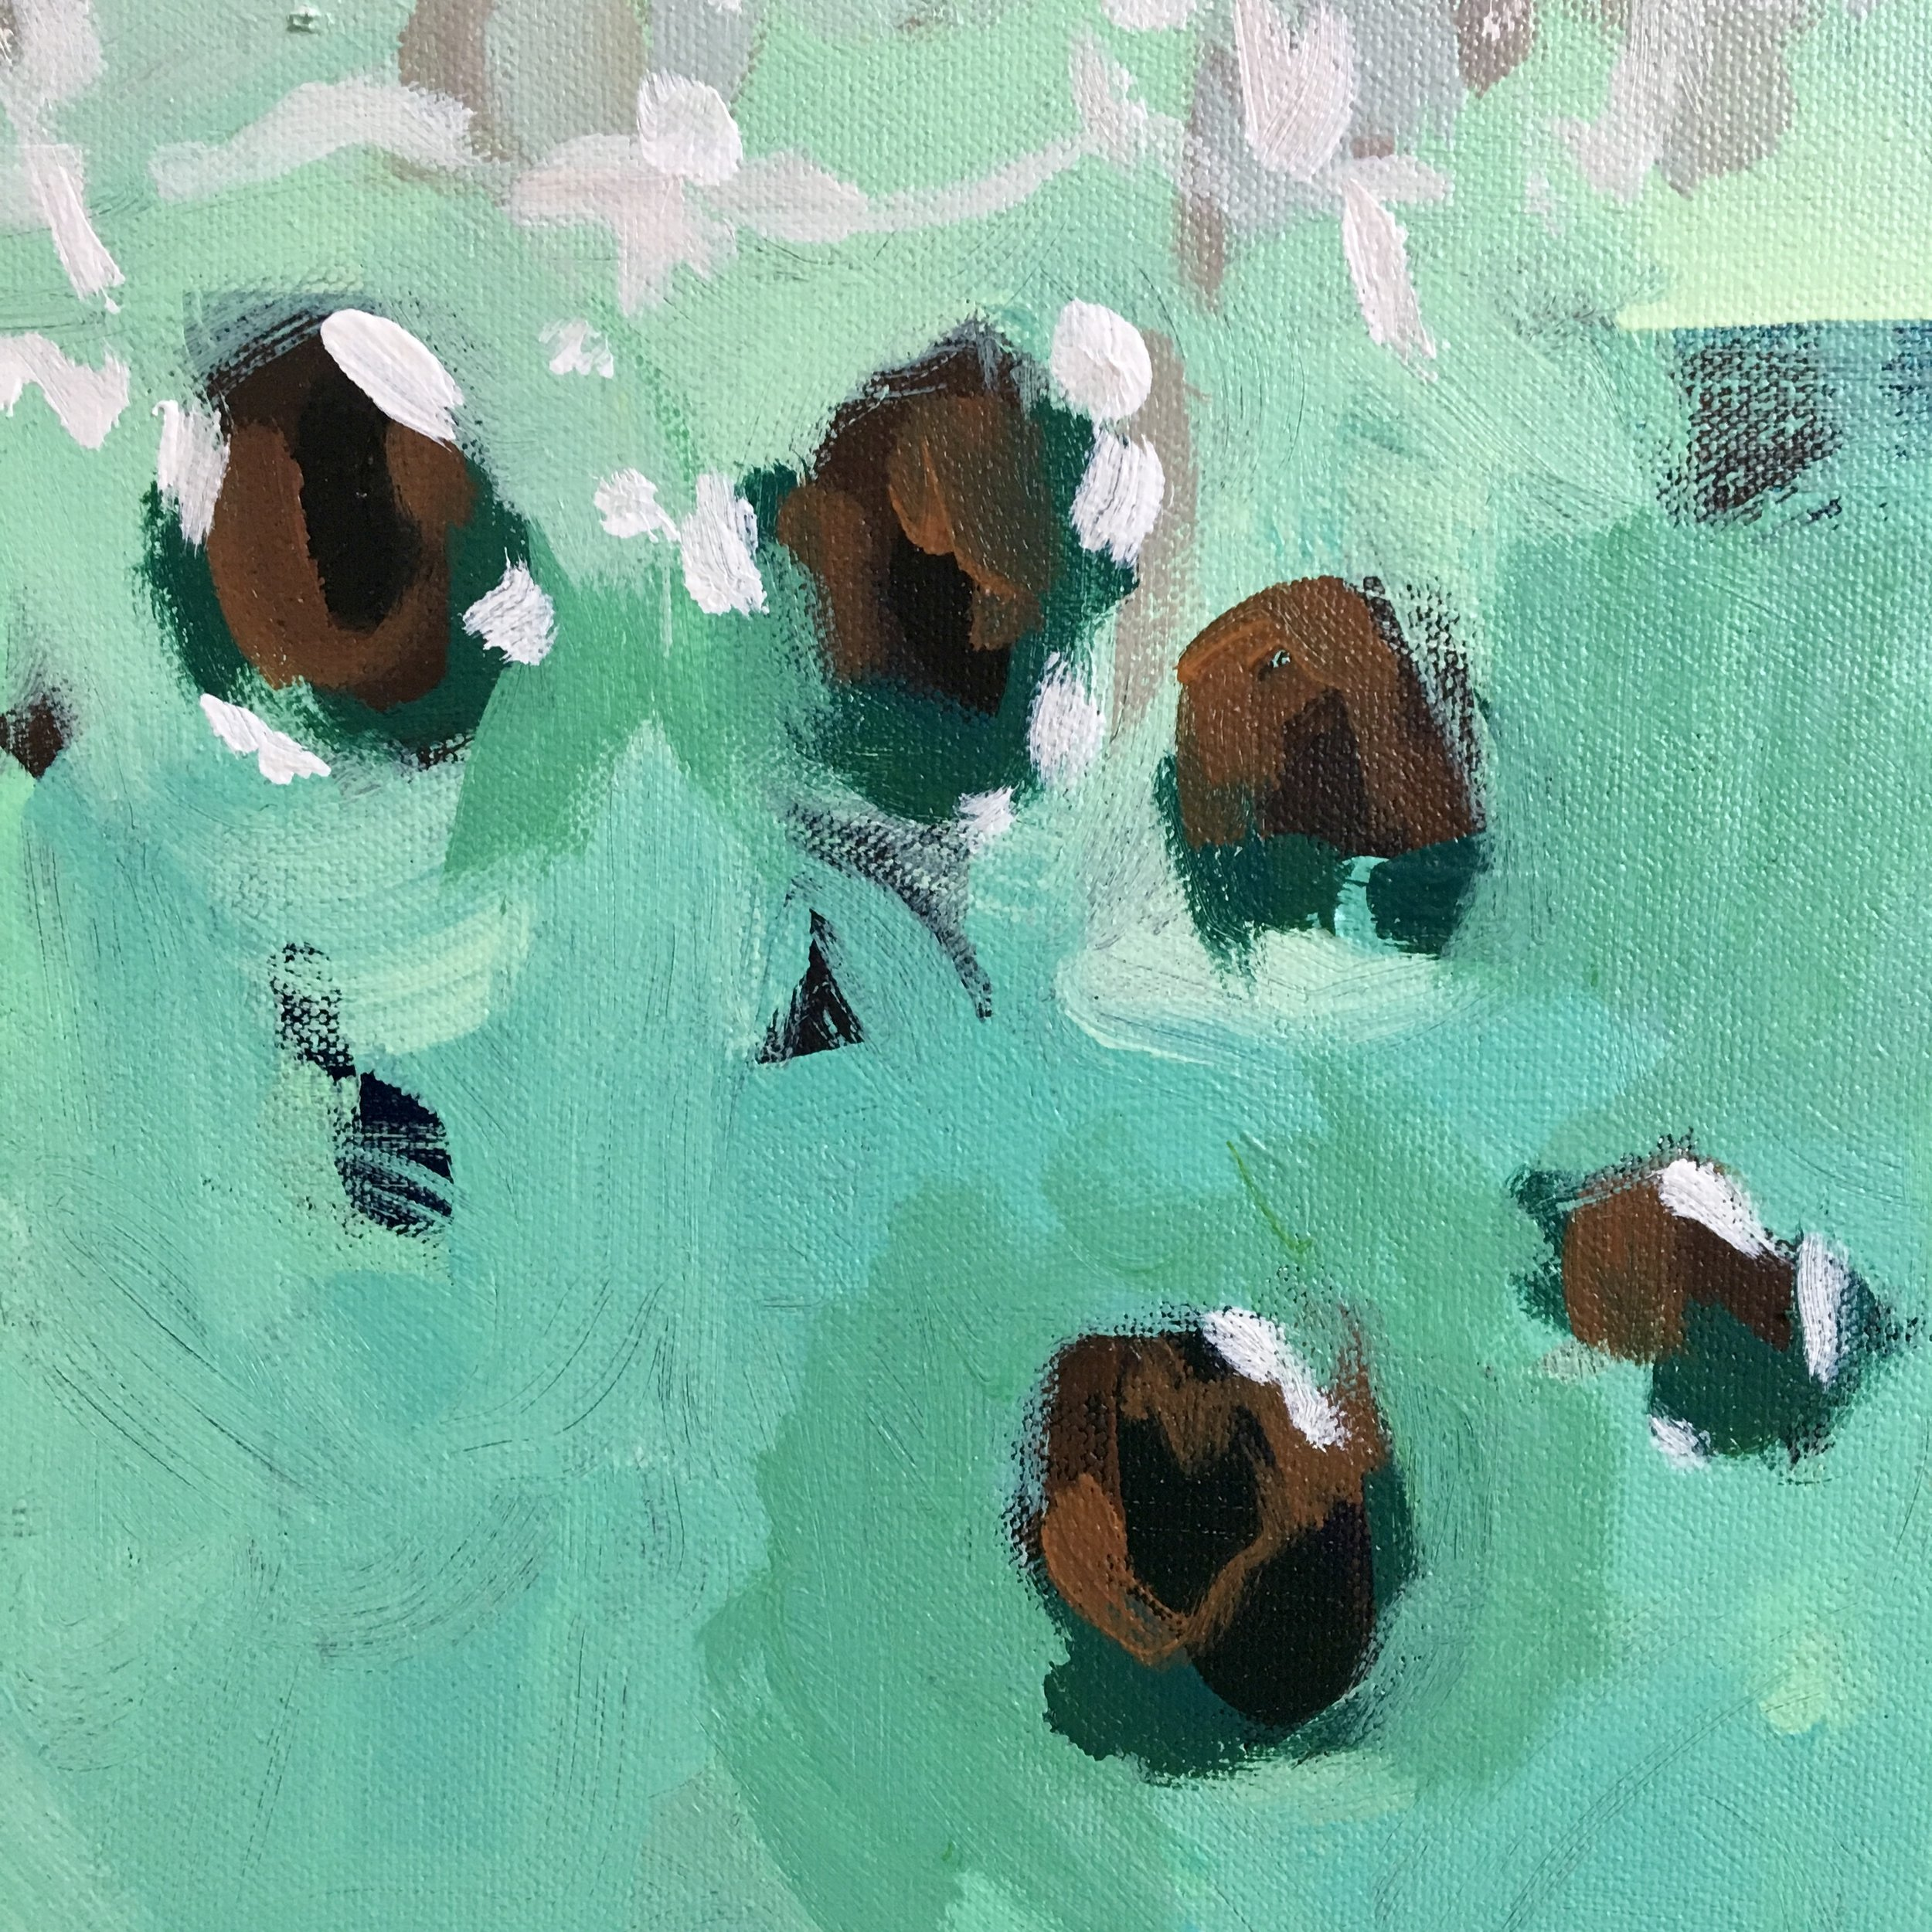 Green Dream (detail), 2018